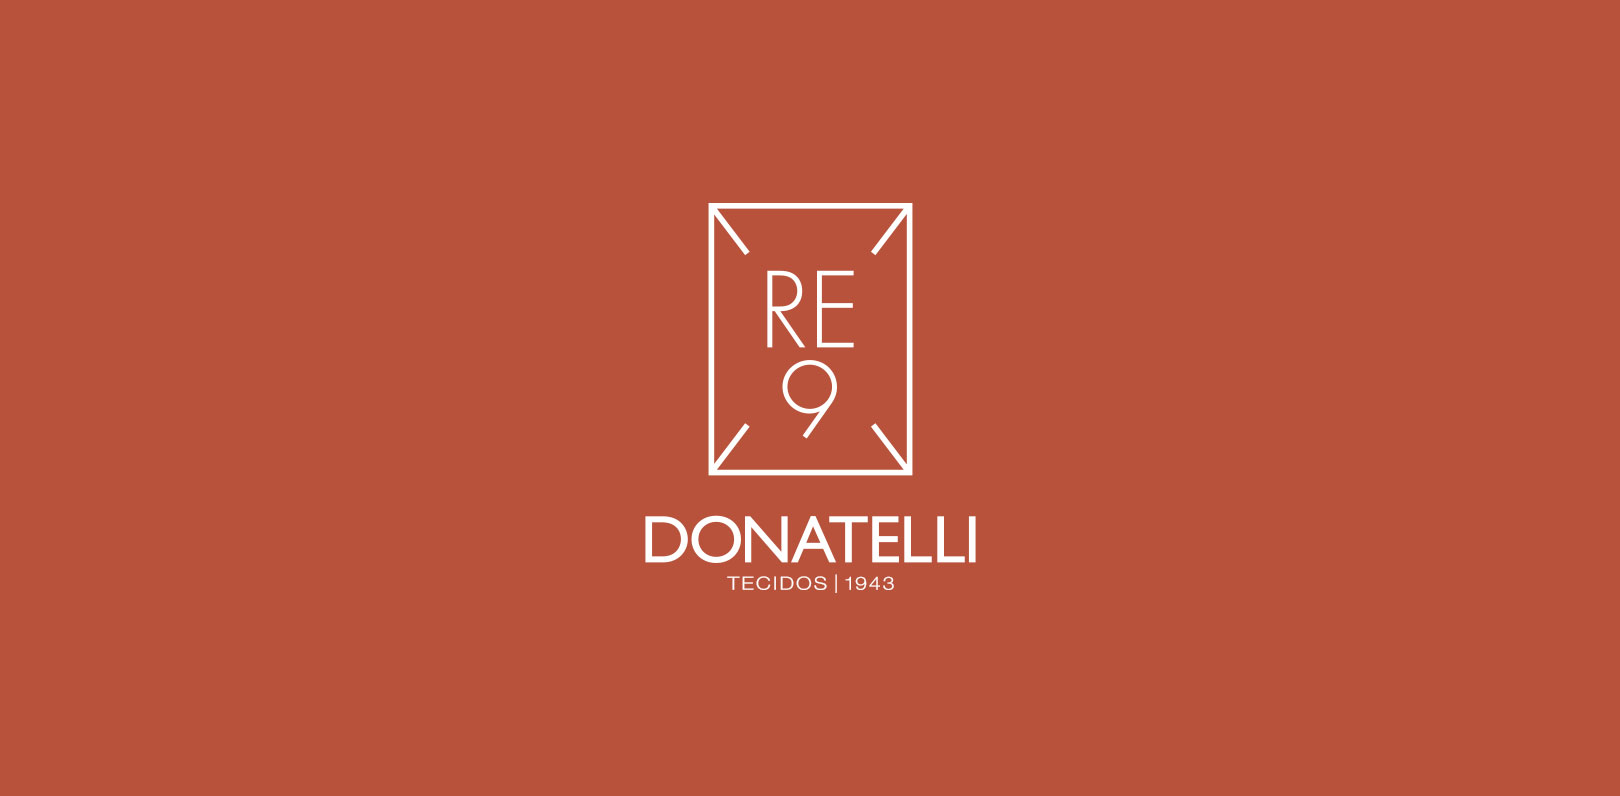 RE9 donatelli tecidos 2019